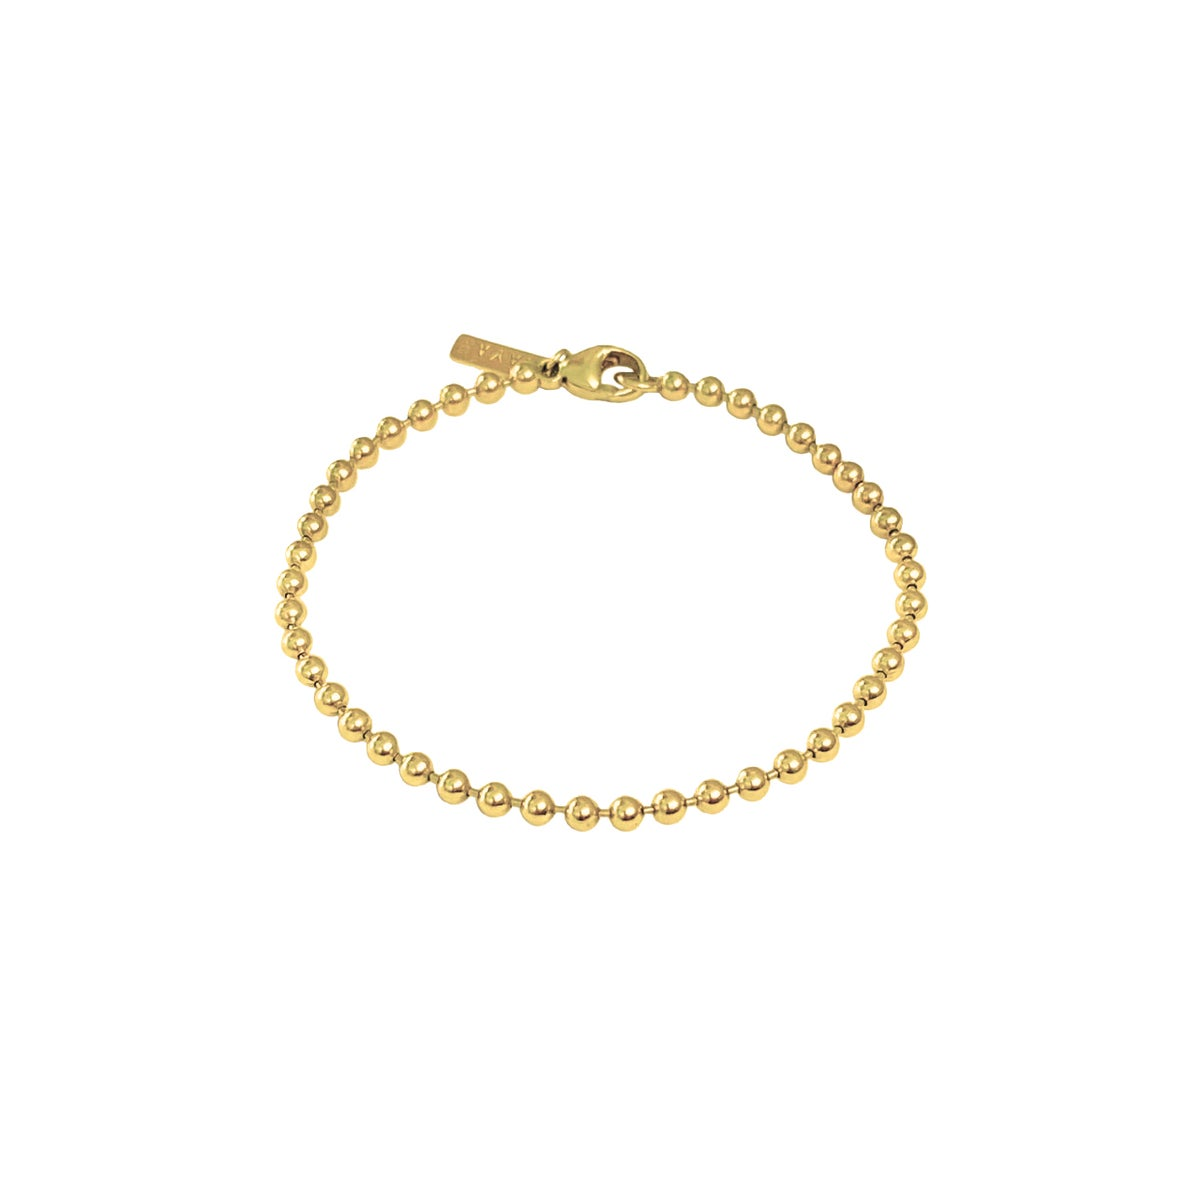 Image of Gold ball chain bracelet